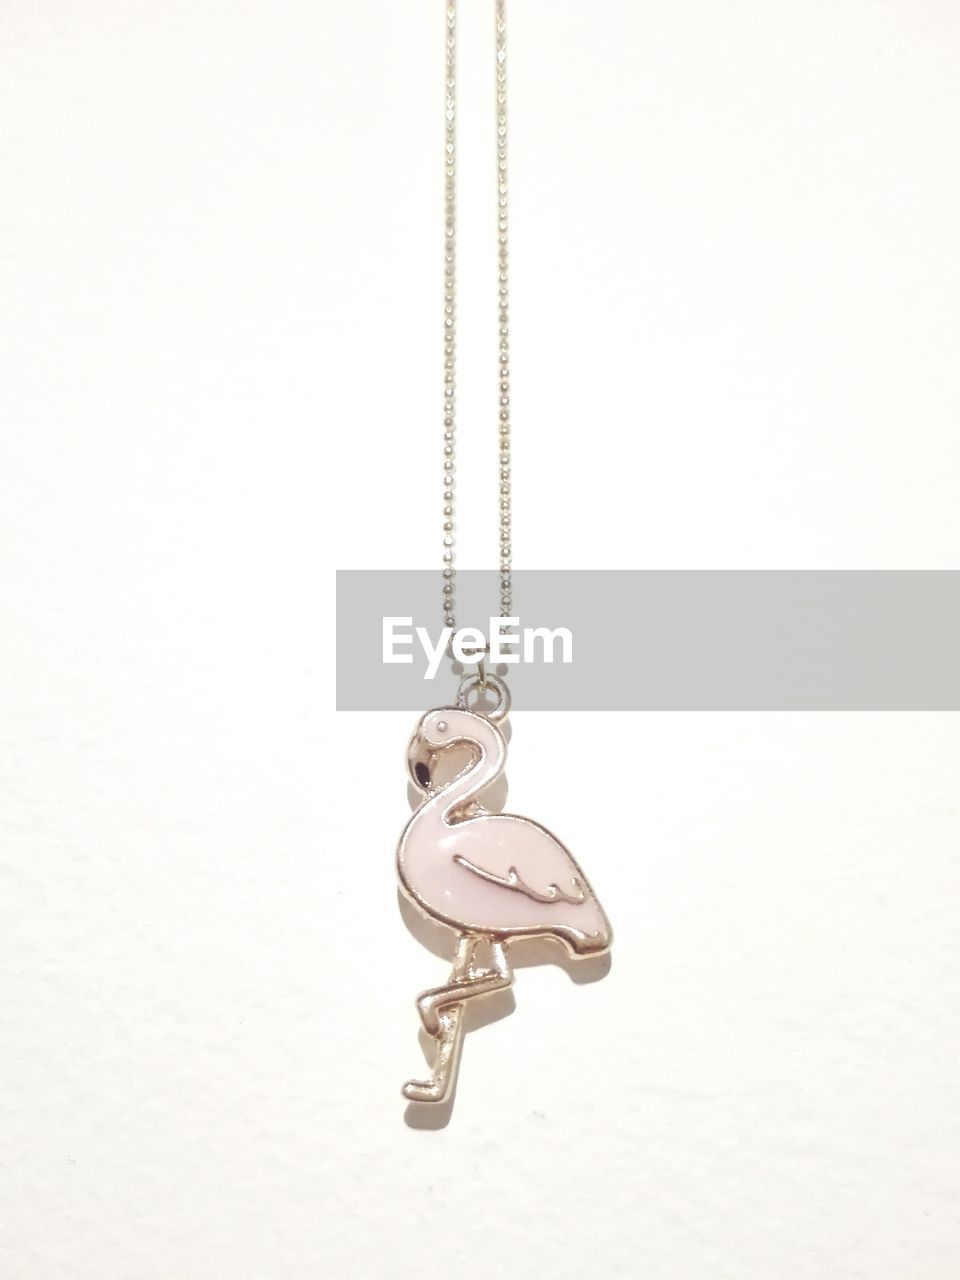 necklace, jewelry, pendant, chain, studio shot, locket, no people, close-up, luxury, white background, outdoors, day